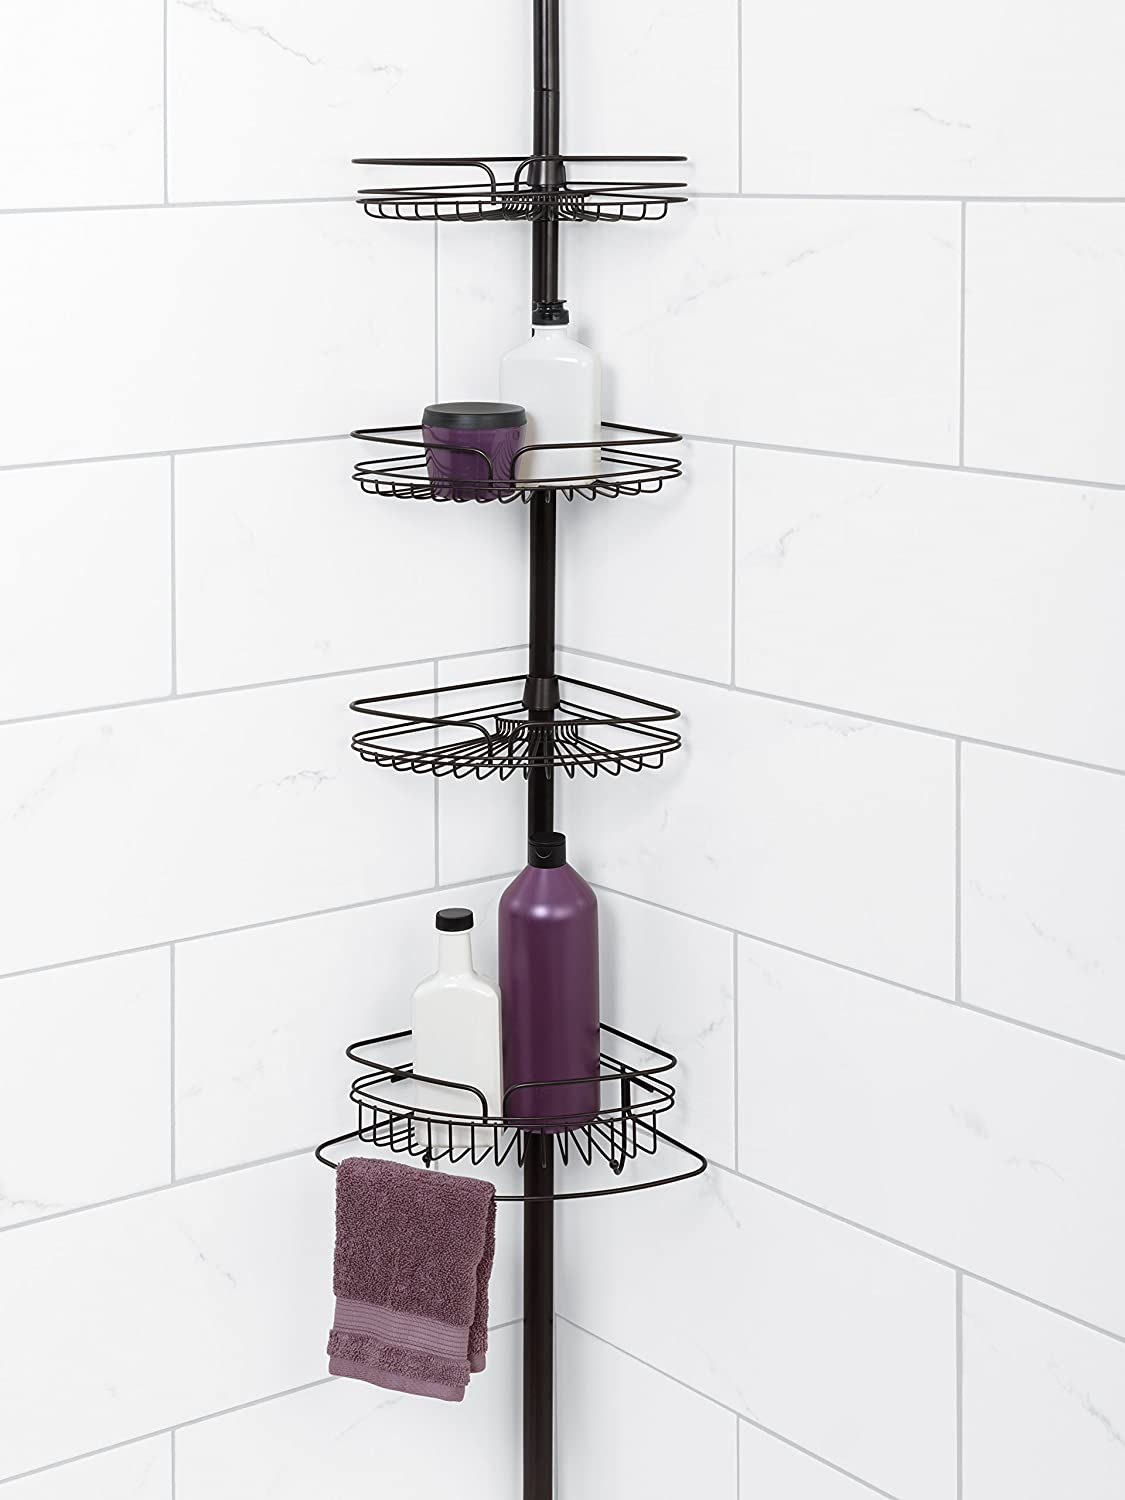 wall proportions storage ideas cool x home corner decorations for small shelf inside shelves shower space mounted